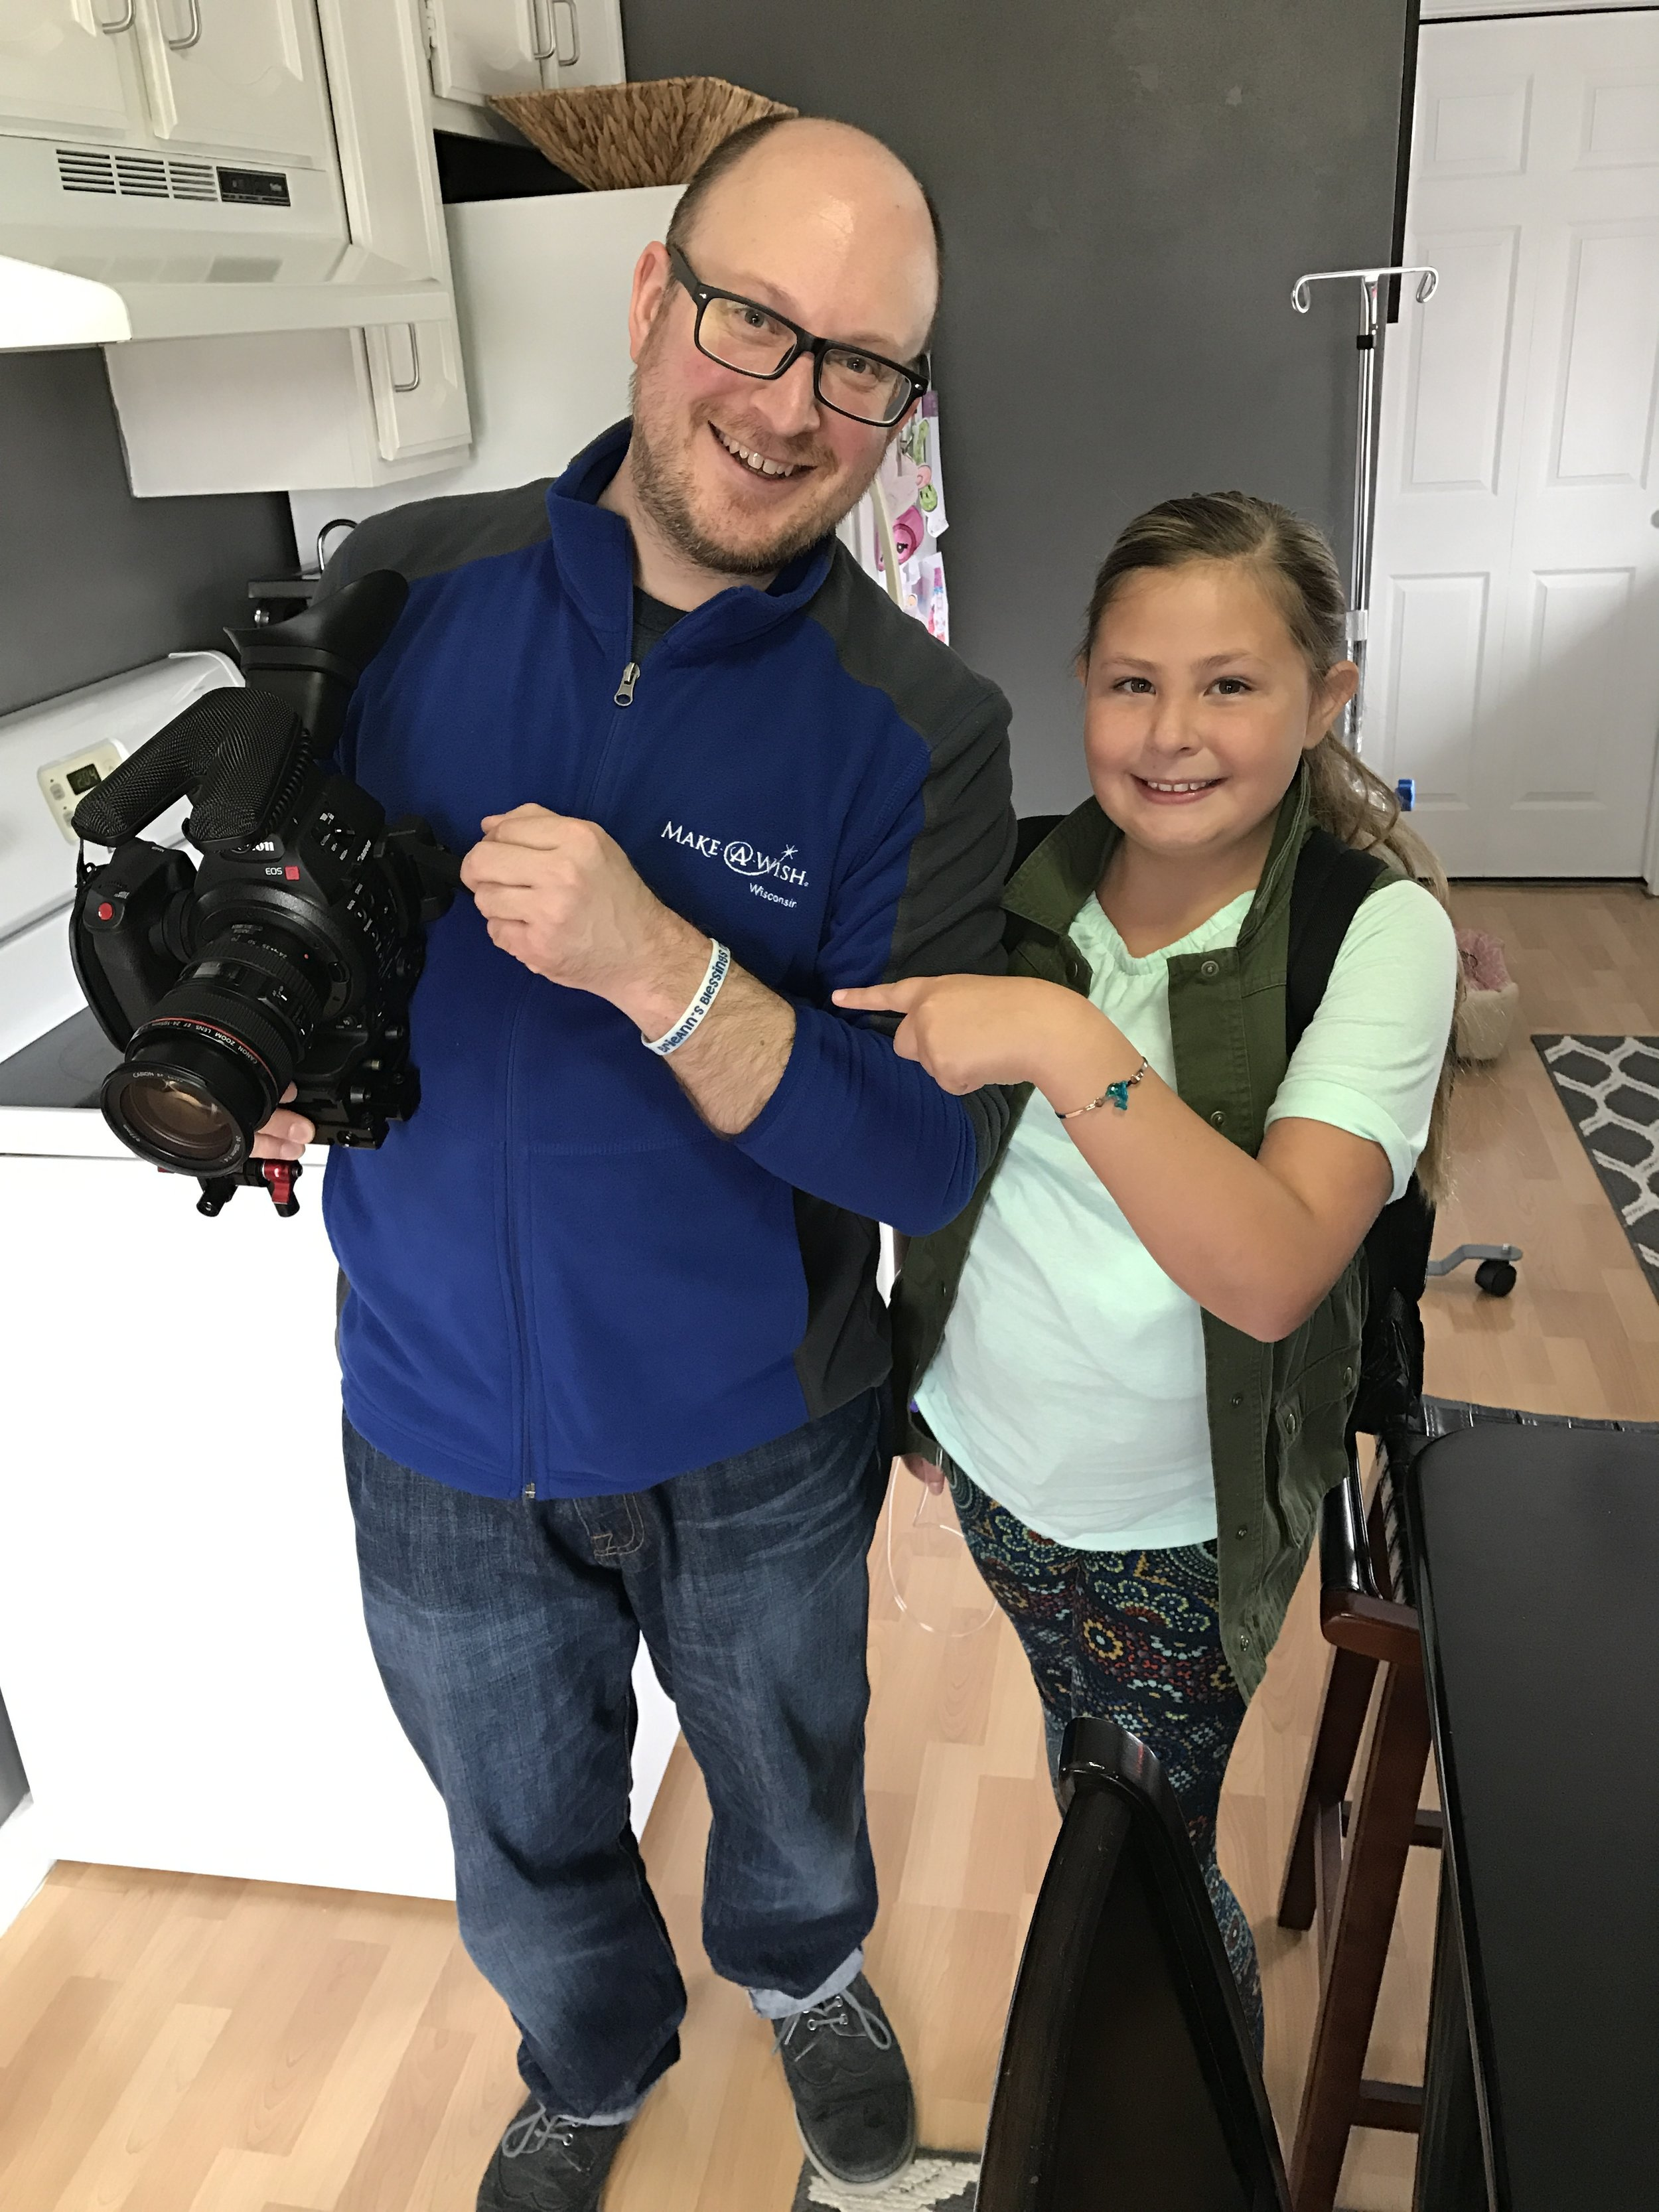 Brian and BrieAnn after filming  BrieAnn's story for Make-A-Wish Wisconsin .